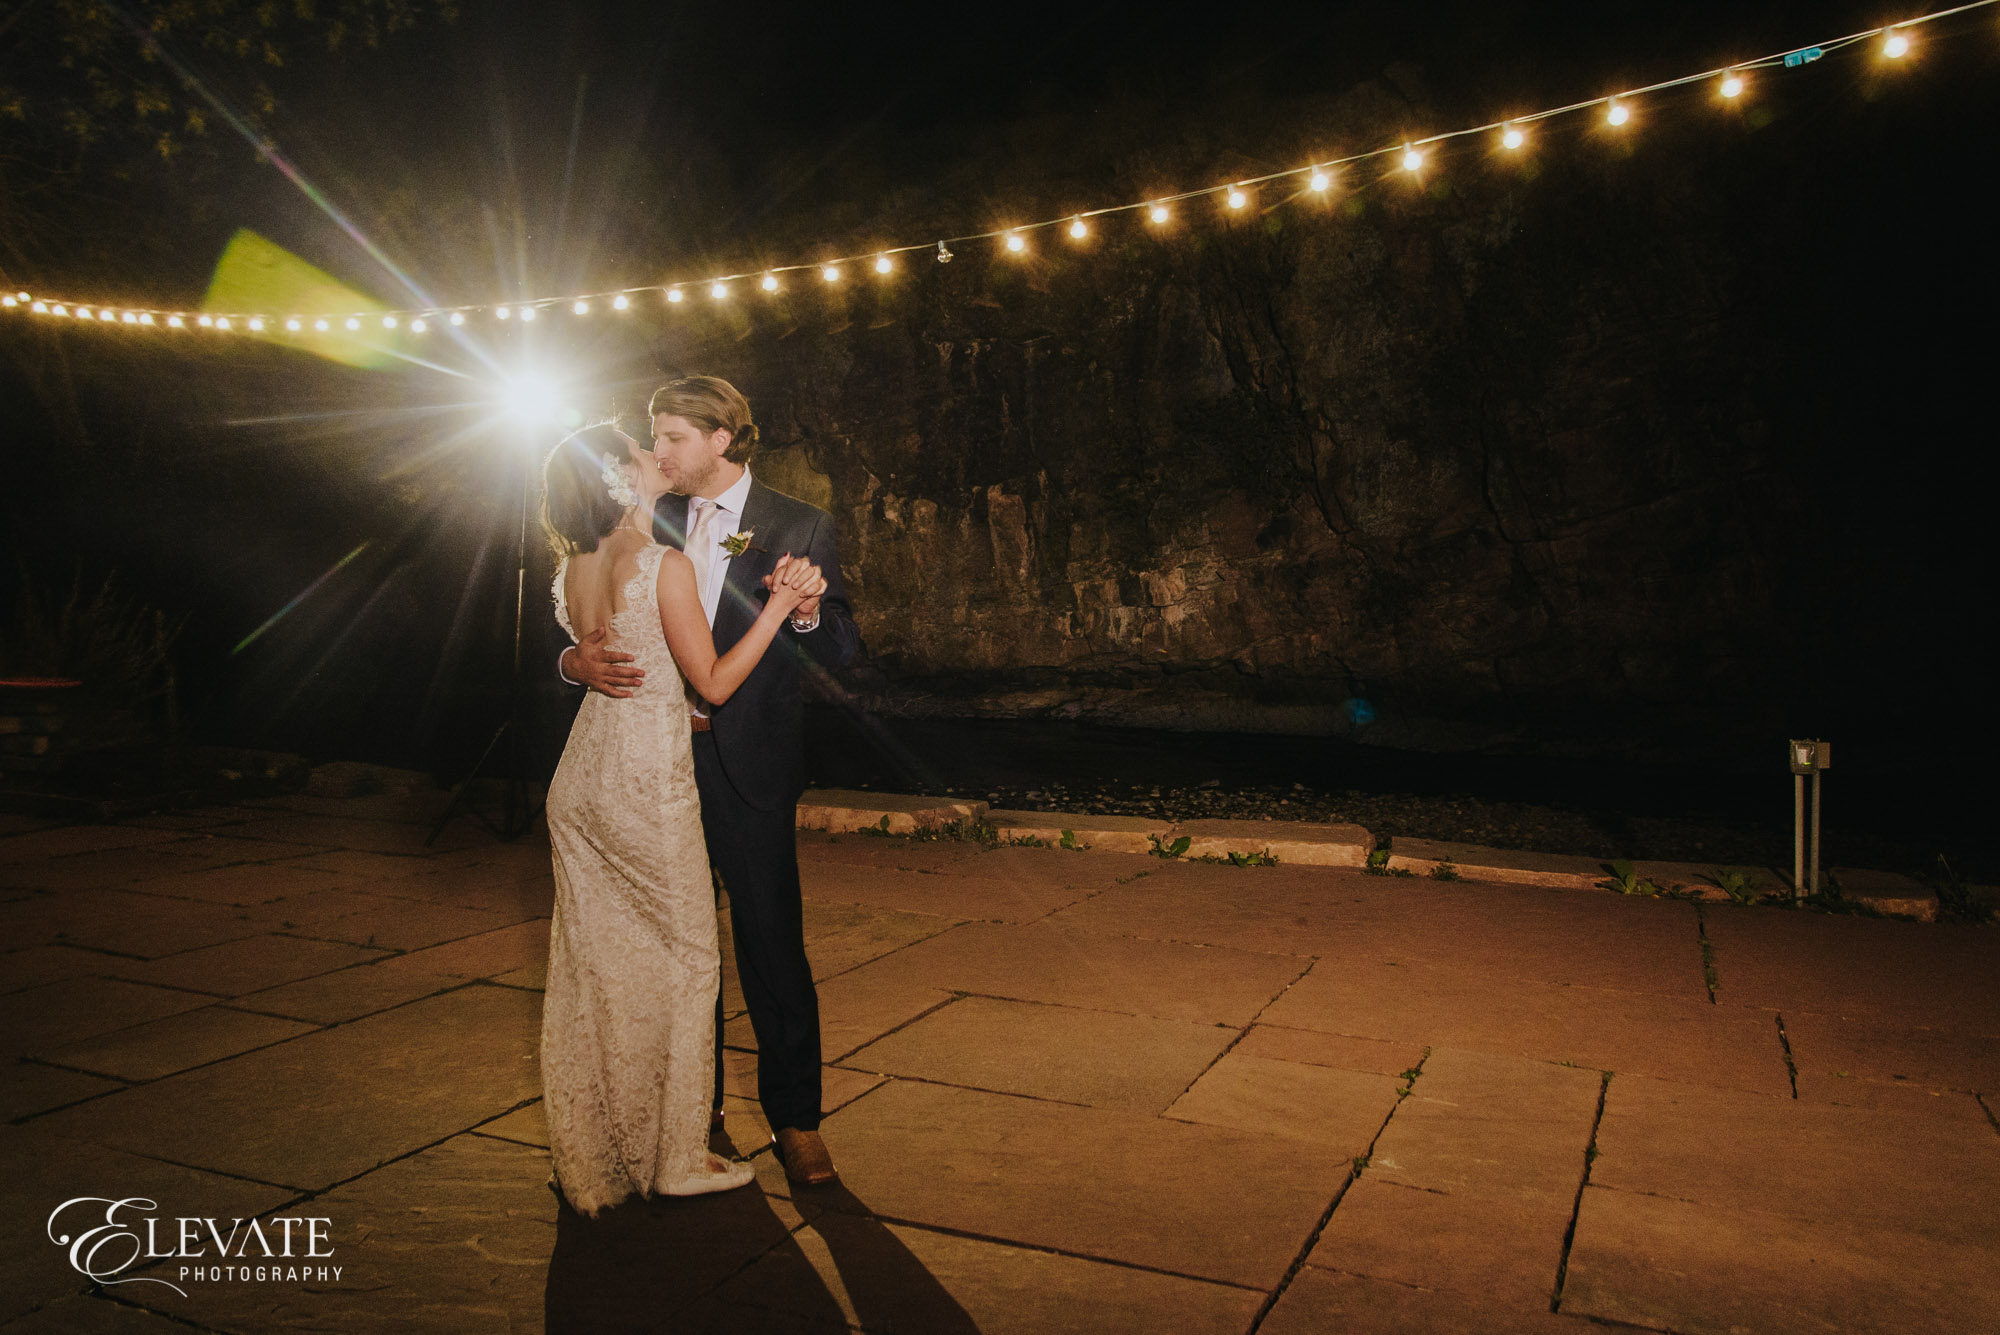 Outdoor wedding first dance market lights